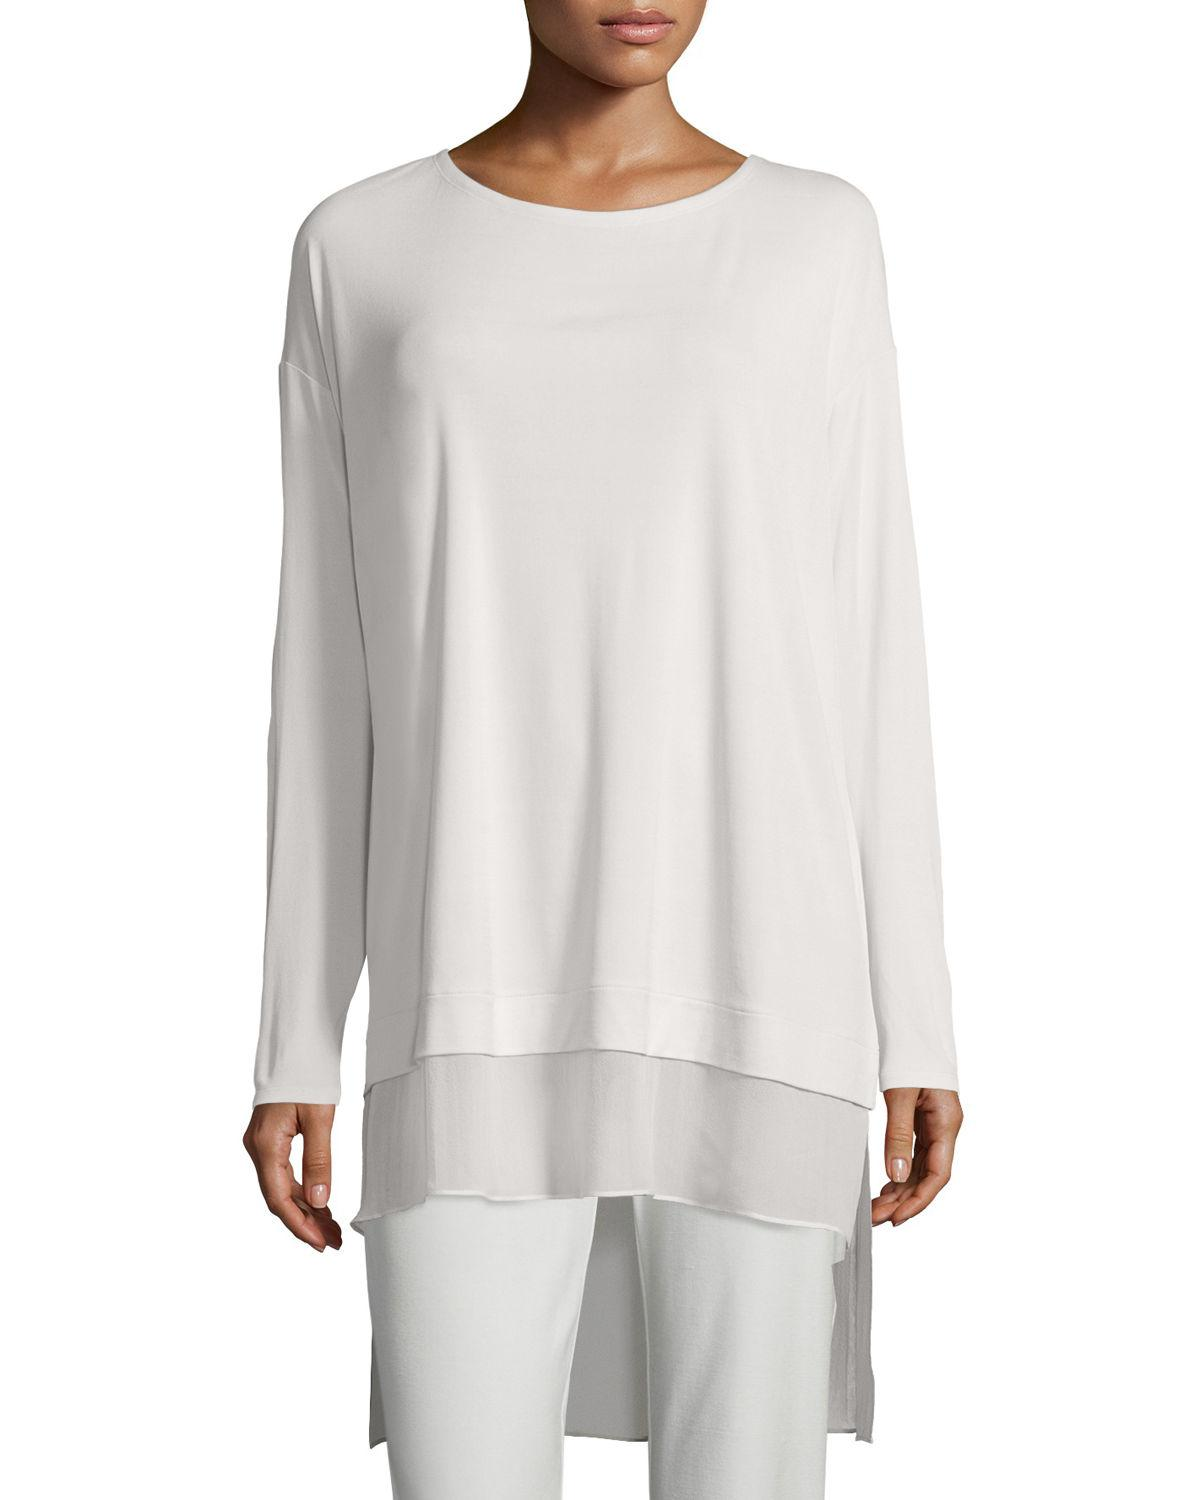 f6ed6a7a82 Lyst - Eileen Fisher Long-sleeve Layered Silk Tunic in White - Save 50%